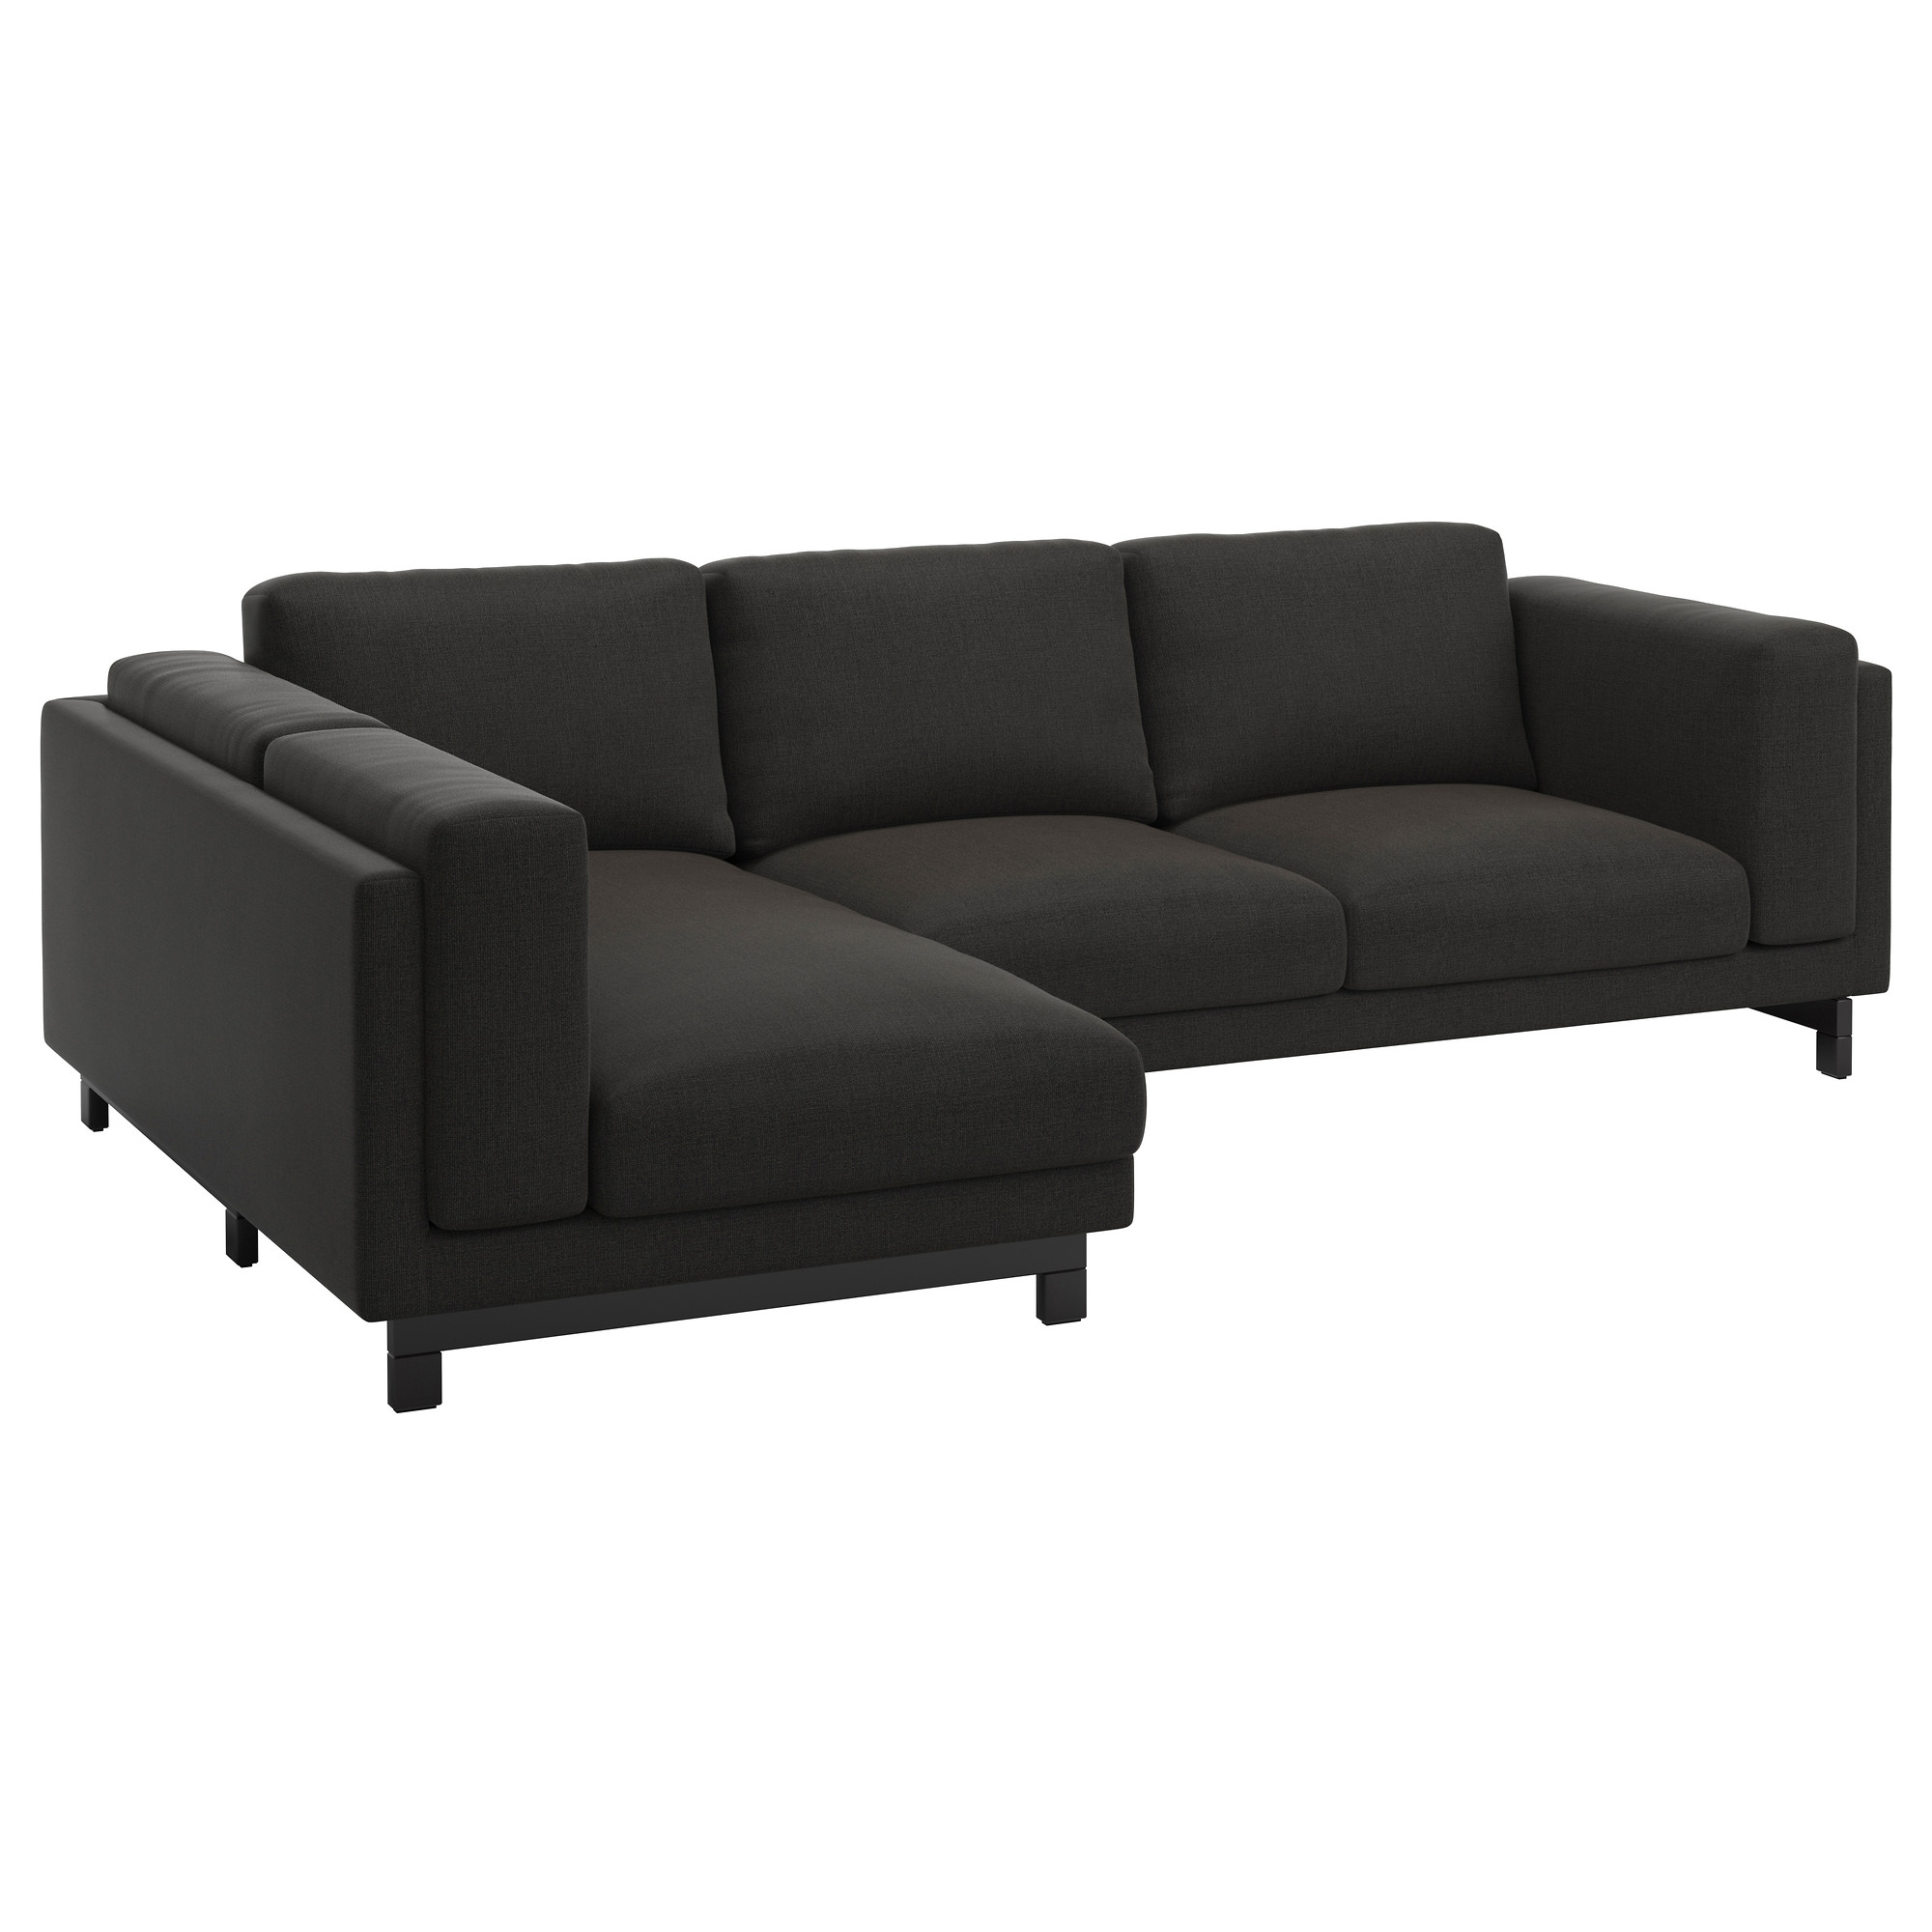 Amazing Sectional Sofas Ikea 62 For Your Modern Sofa Inspiration In Favorite Sectional Sofas At Ikea (View 2 of 20)